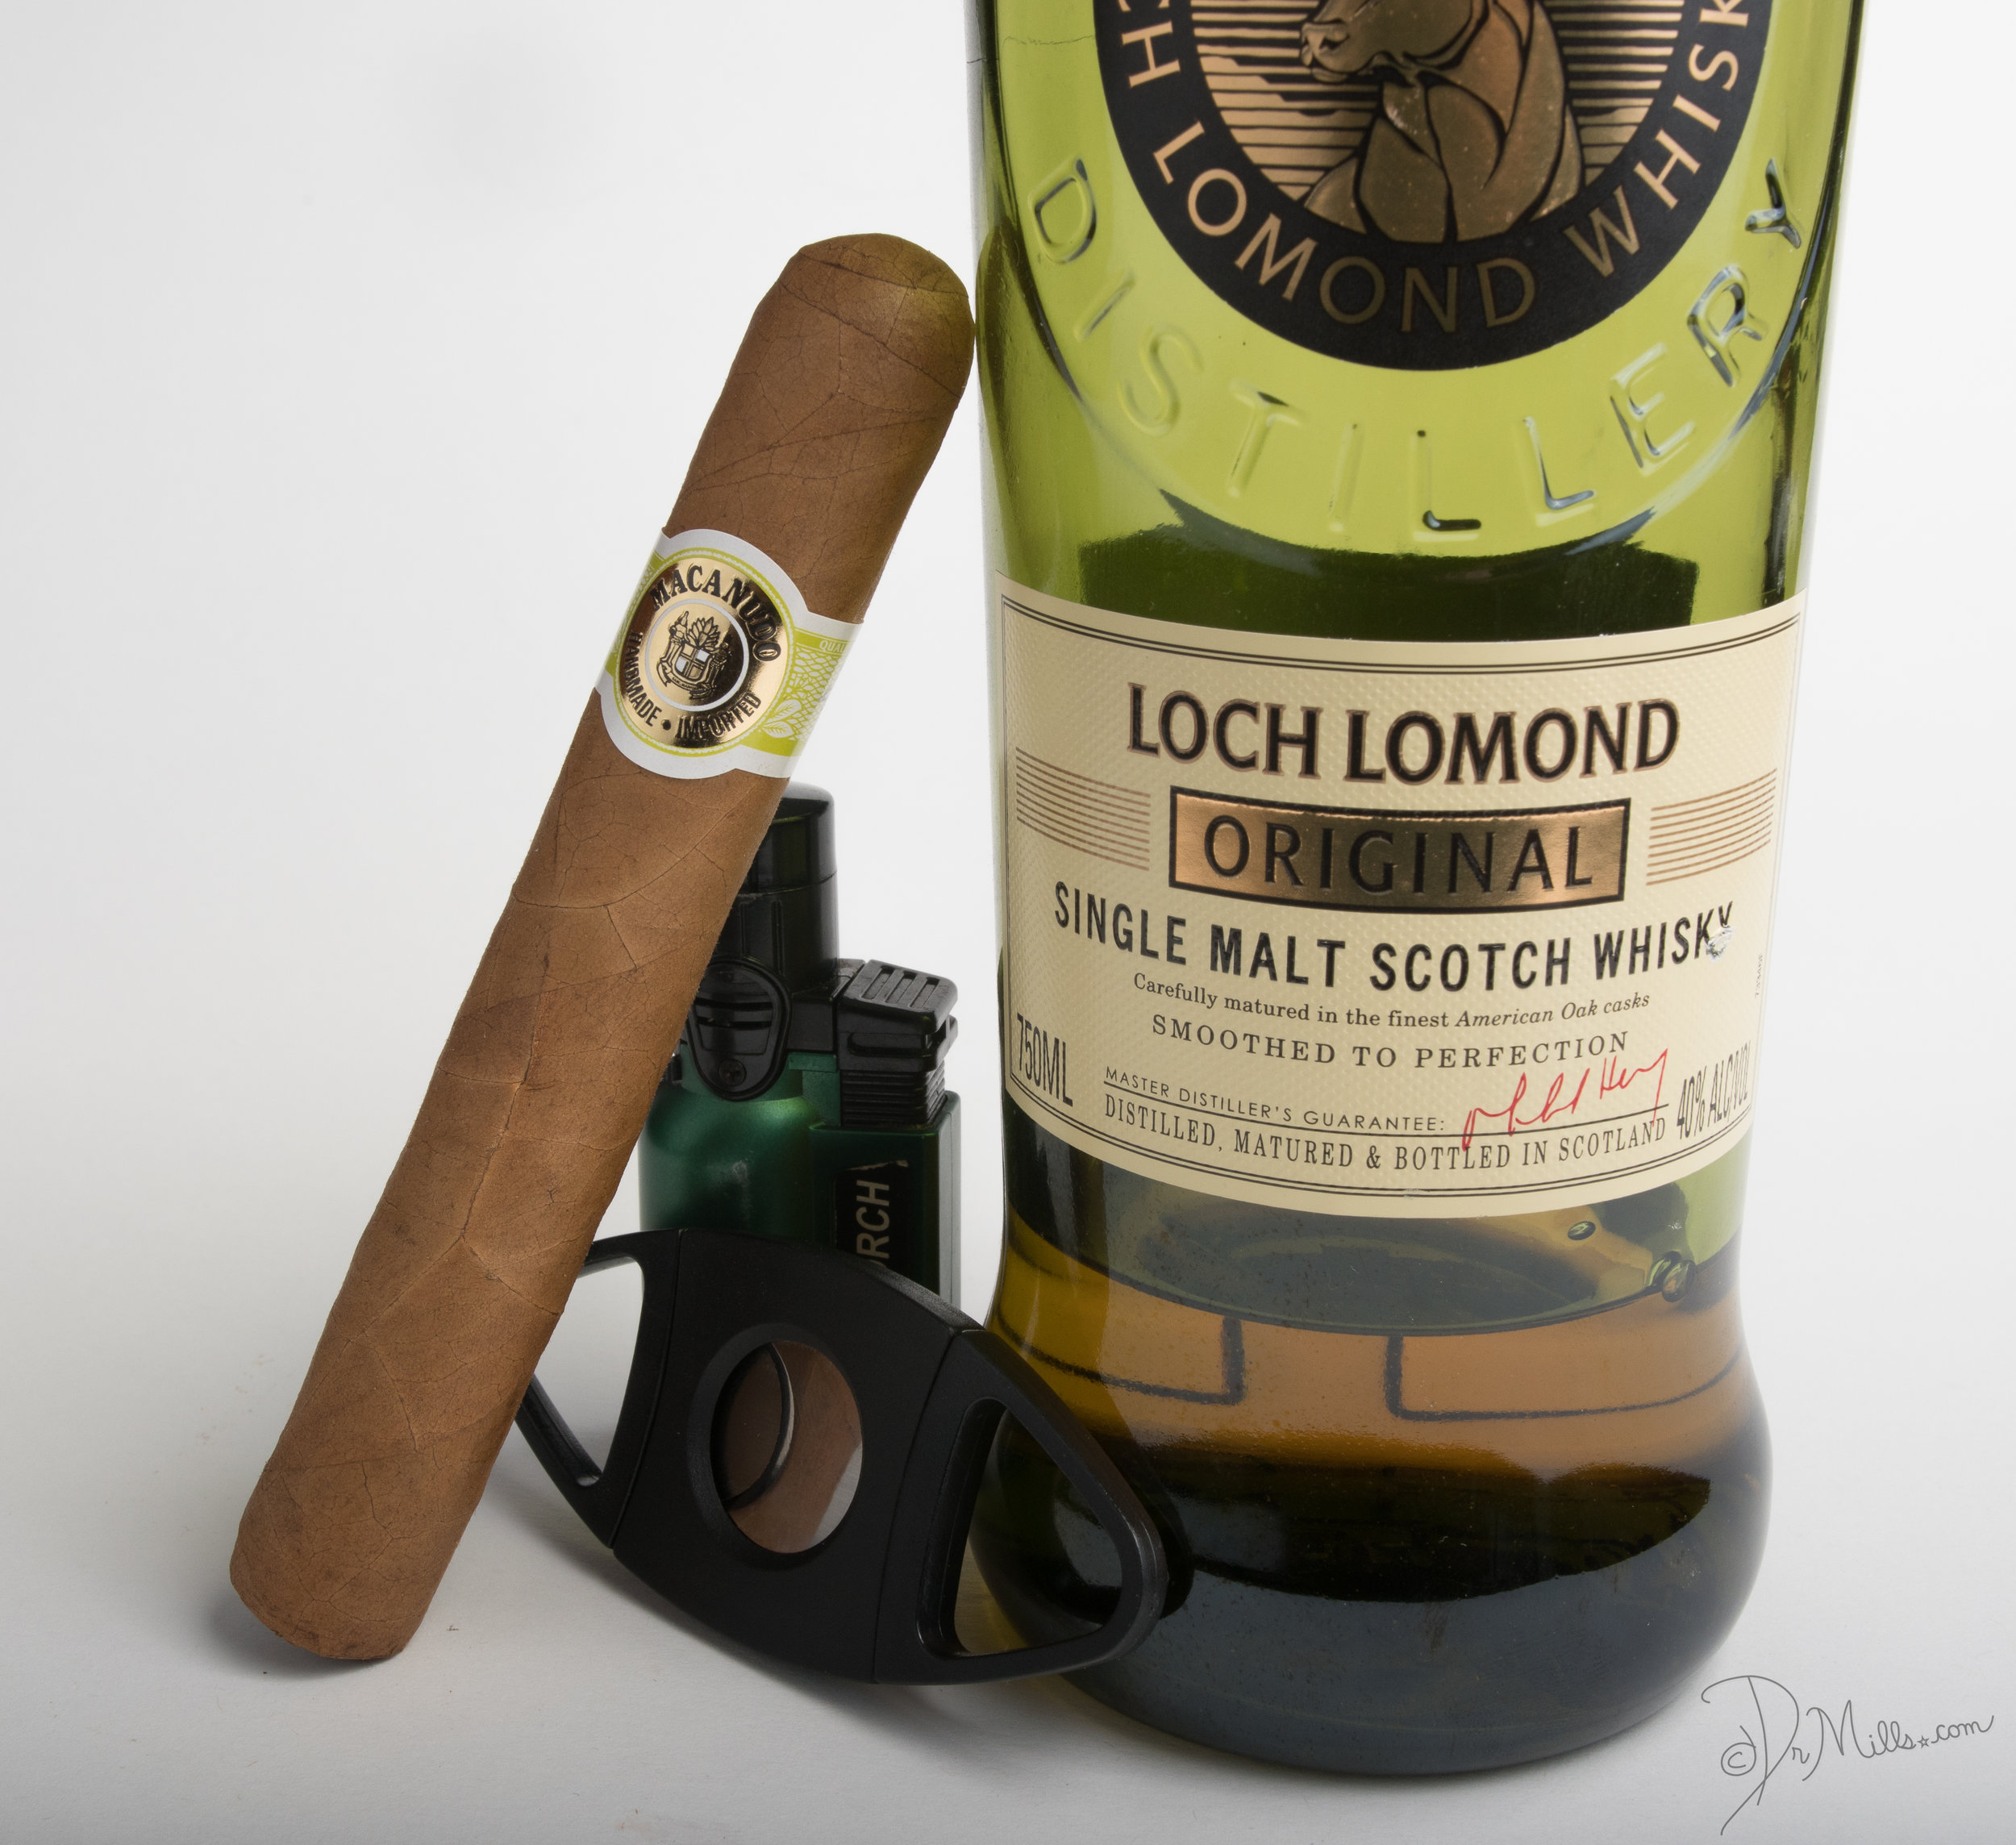 Calorie Ecomomics - 9-14-18 - Bottle and Cigar - 72ppi.jpg